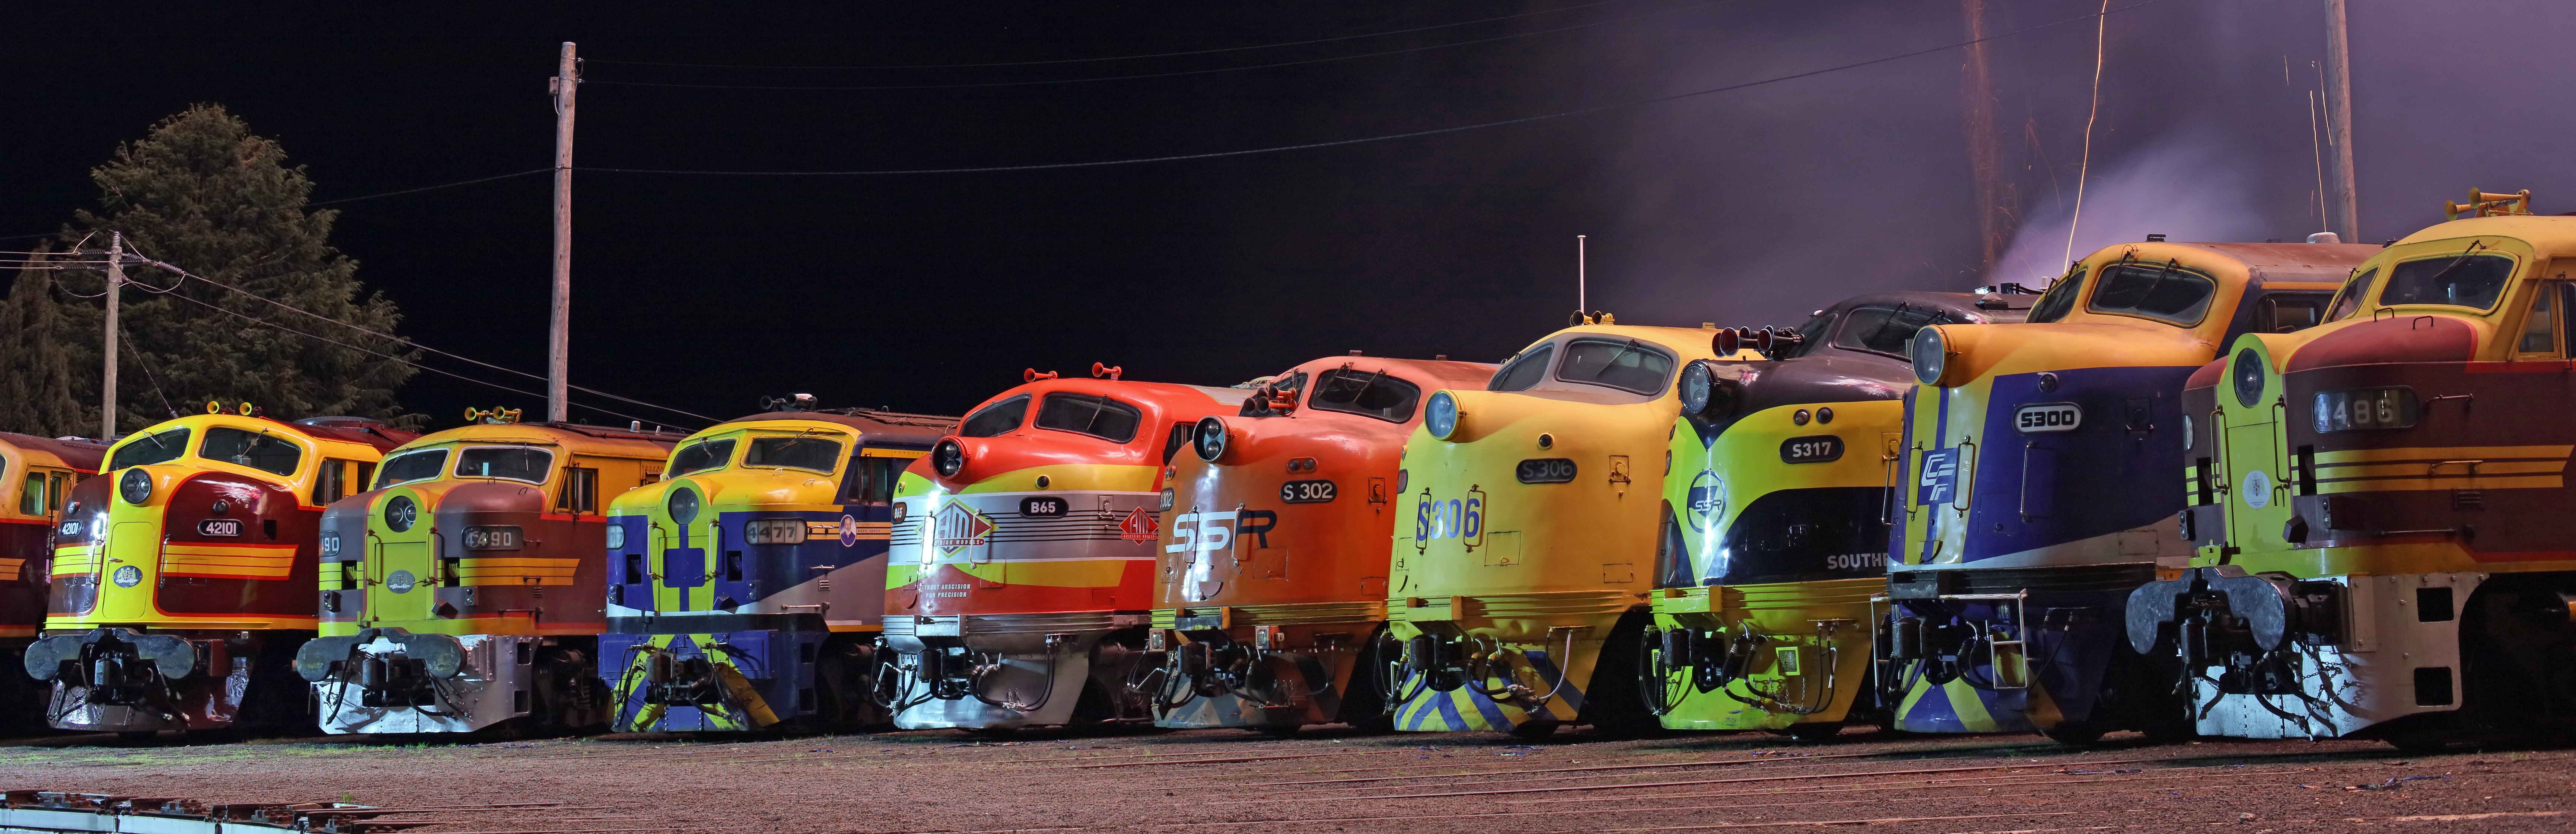 During the night of 1 October 2016 the Streamliners 2016 event in Goulburn (Australia) the following bulldog noses were amongst others enjoying some attention (from left to right): Lachlan Valley Railway 4204;The Heritage Locomotive Company 42101;Transport Heritage NSW 4490;Qube 4477;SSR B65;SSR S302;PN S306;SSR S317;CF Rail Services S300;Lachlan Alco Group 4486.